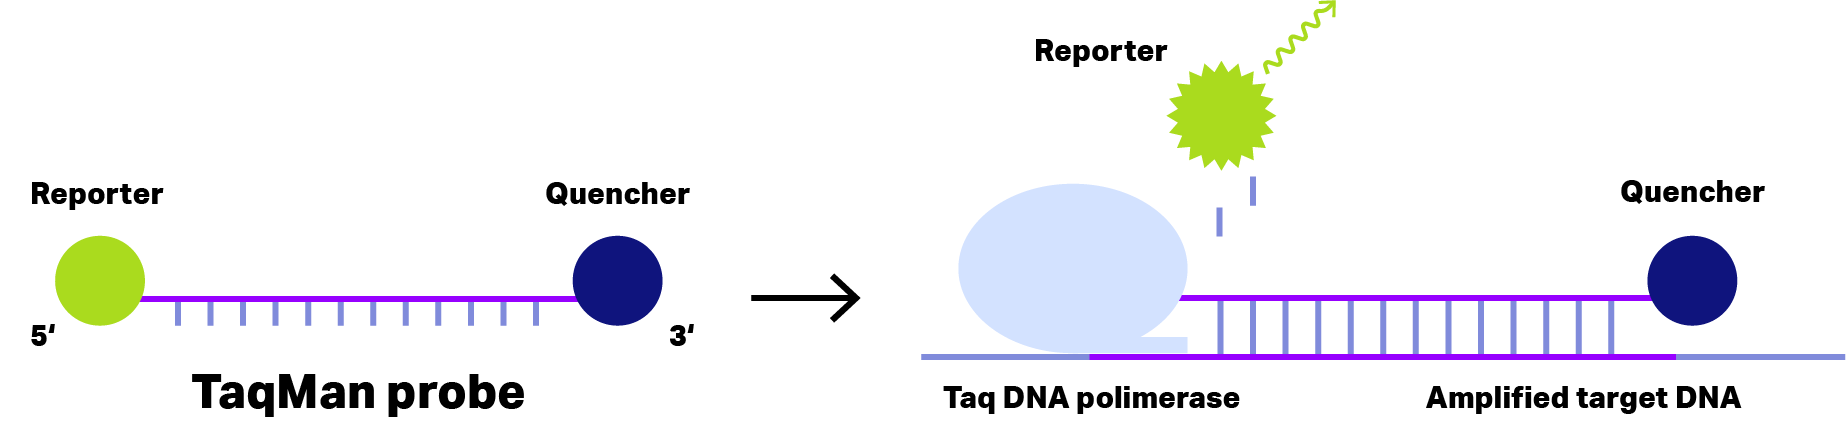 DNA probe TaqMan in solution and after binding to target DNA.